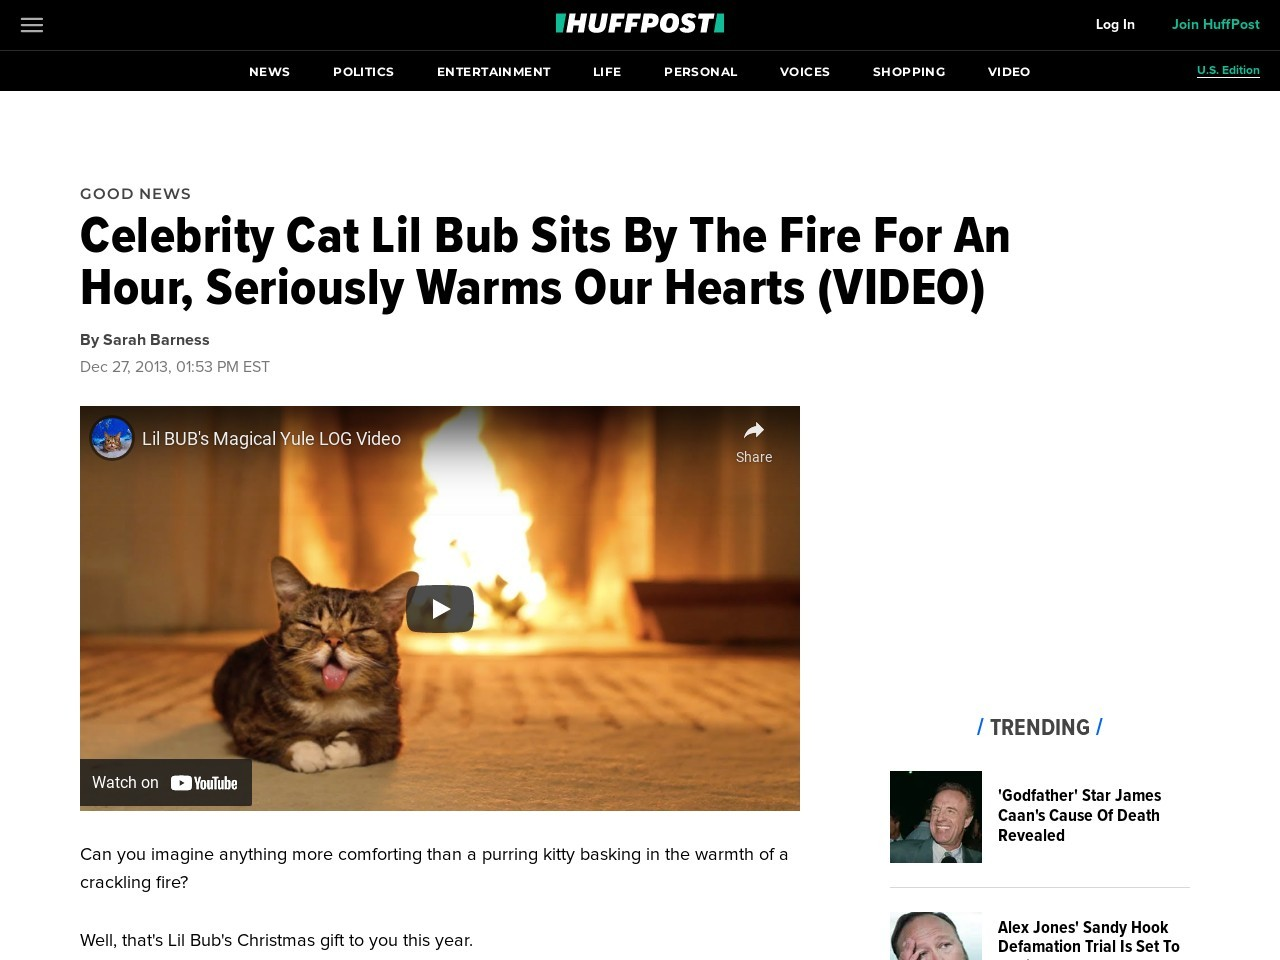 Celebrity Cat Lil Bub Sits By The Fire For An Hour, Seriously Warms Our Hearts …